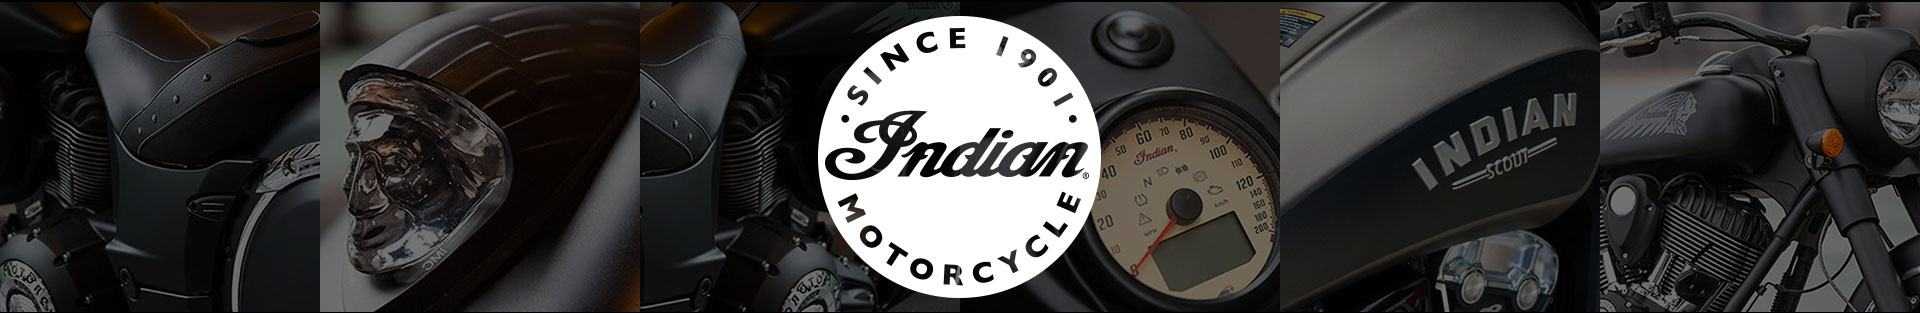 Indian Motorcycles sold at Elkhart Indian Motorcycle in Elkhart, IN